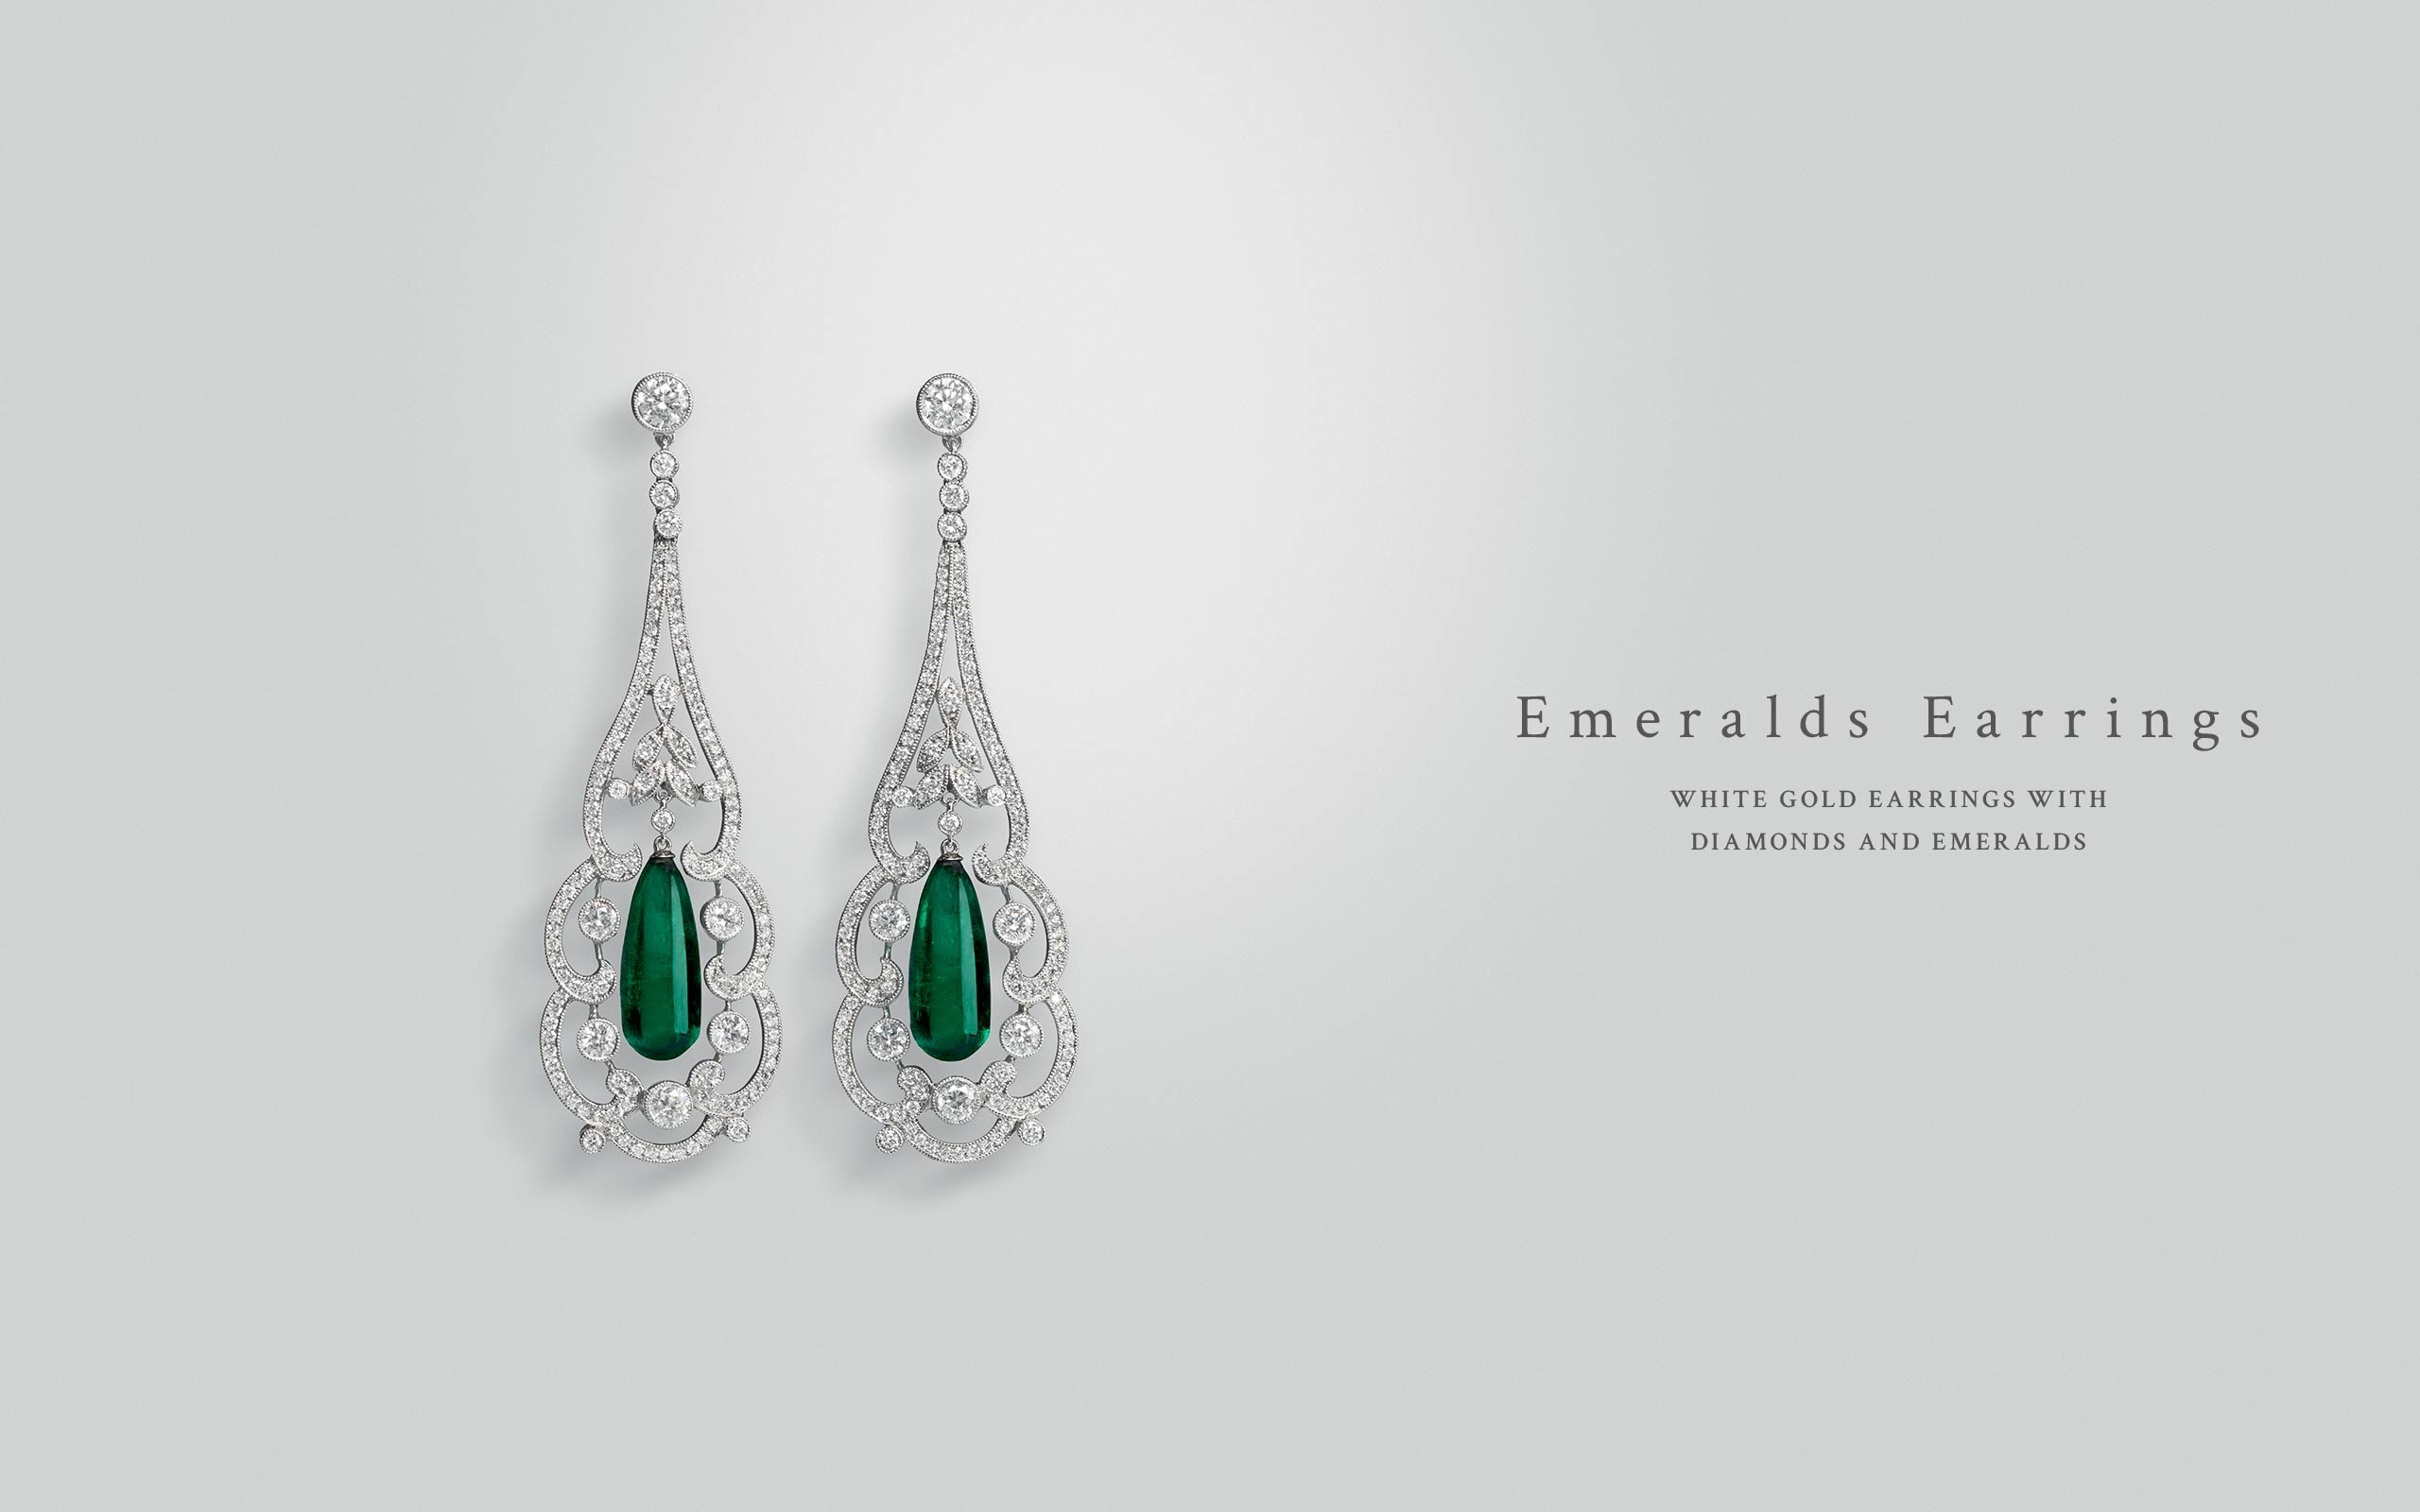 Emeralds Earrings 04 | Maria Gaspari